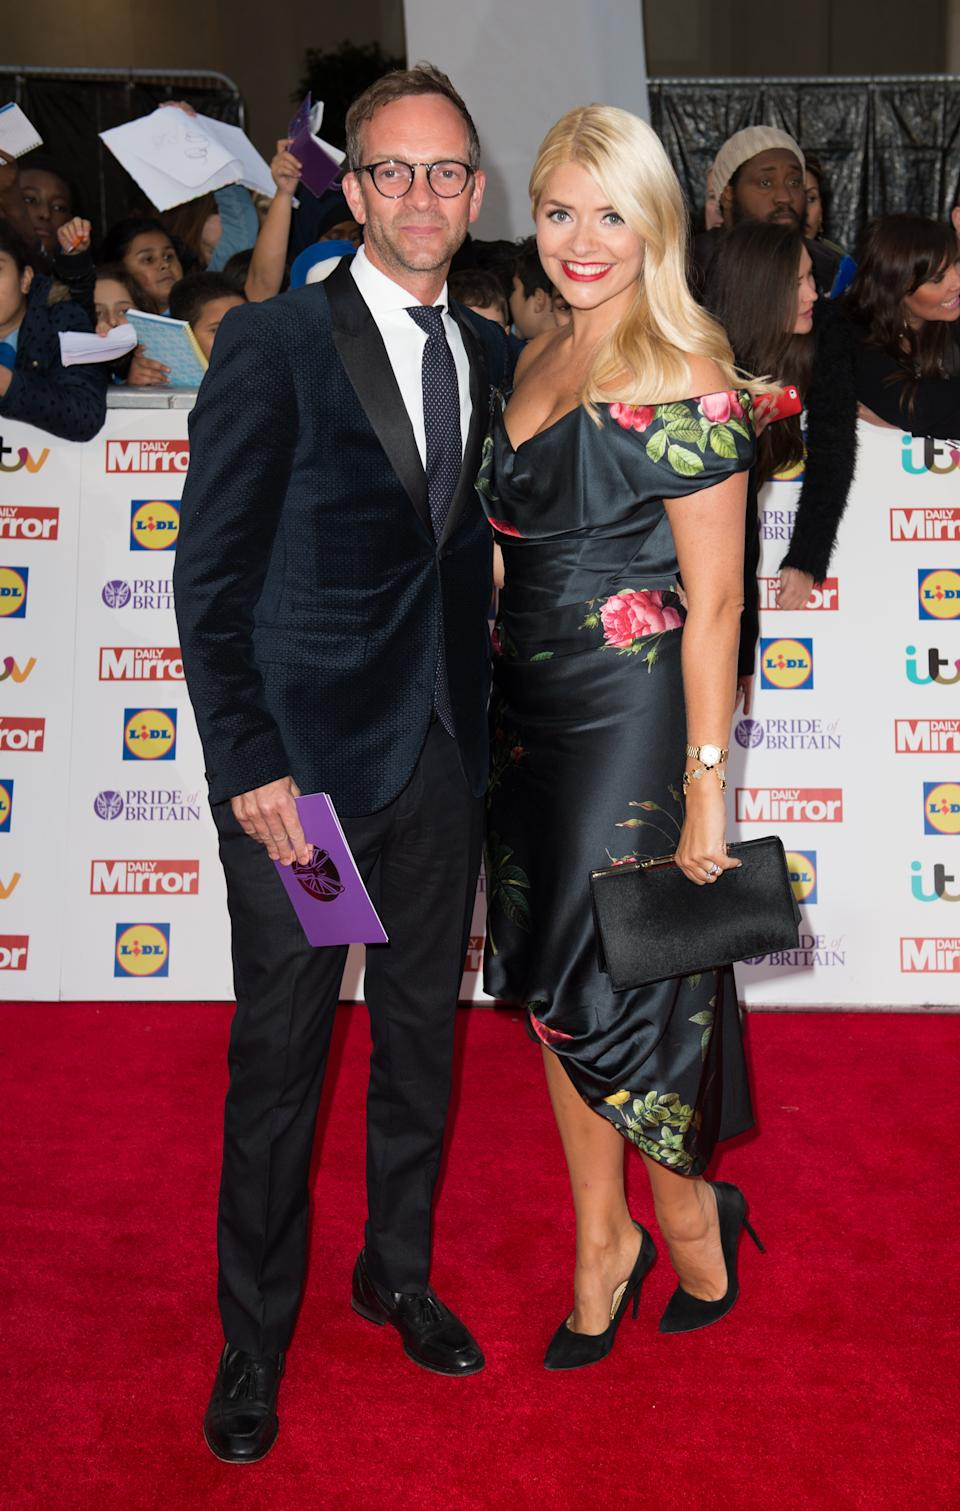 LONDON, ENGLAND - SEPTEMBER 28:  Holly Willoughby and Daniel Baldwin attend the Pride of Britain awards at The Grosvenor House Hotel on September 28, 2015 in London, England.  (Photo by Samir Hussein/WireImage)